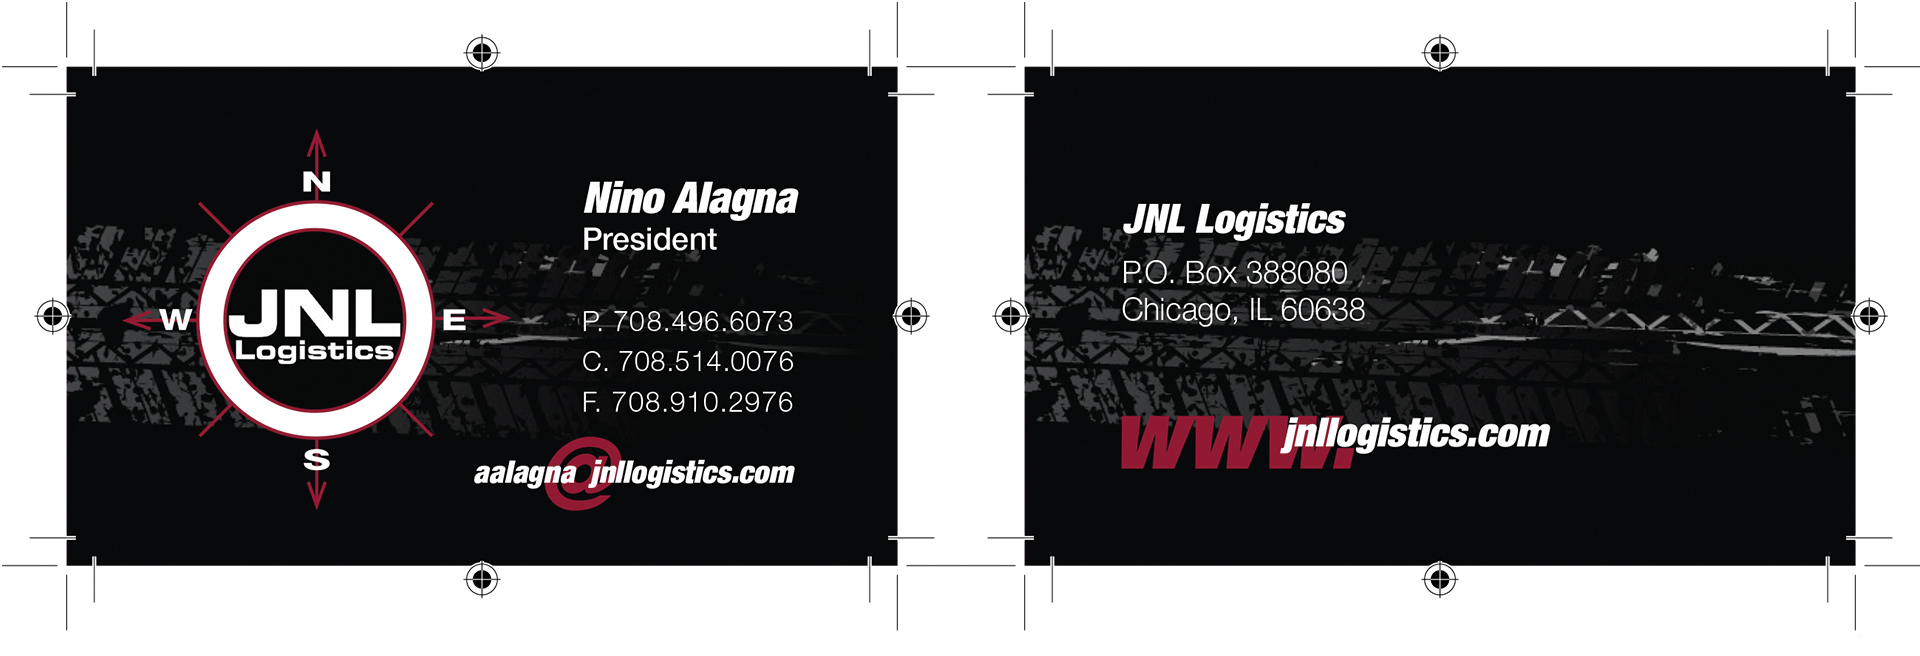 JNL Logistics Corporate Identity System